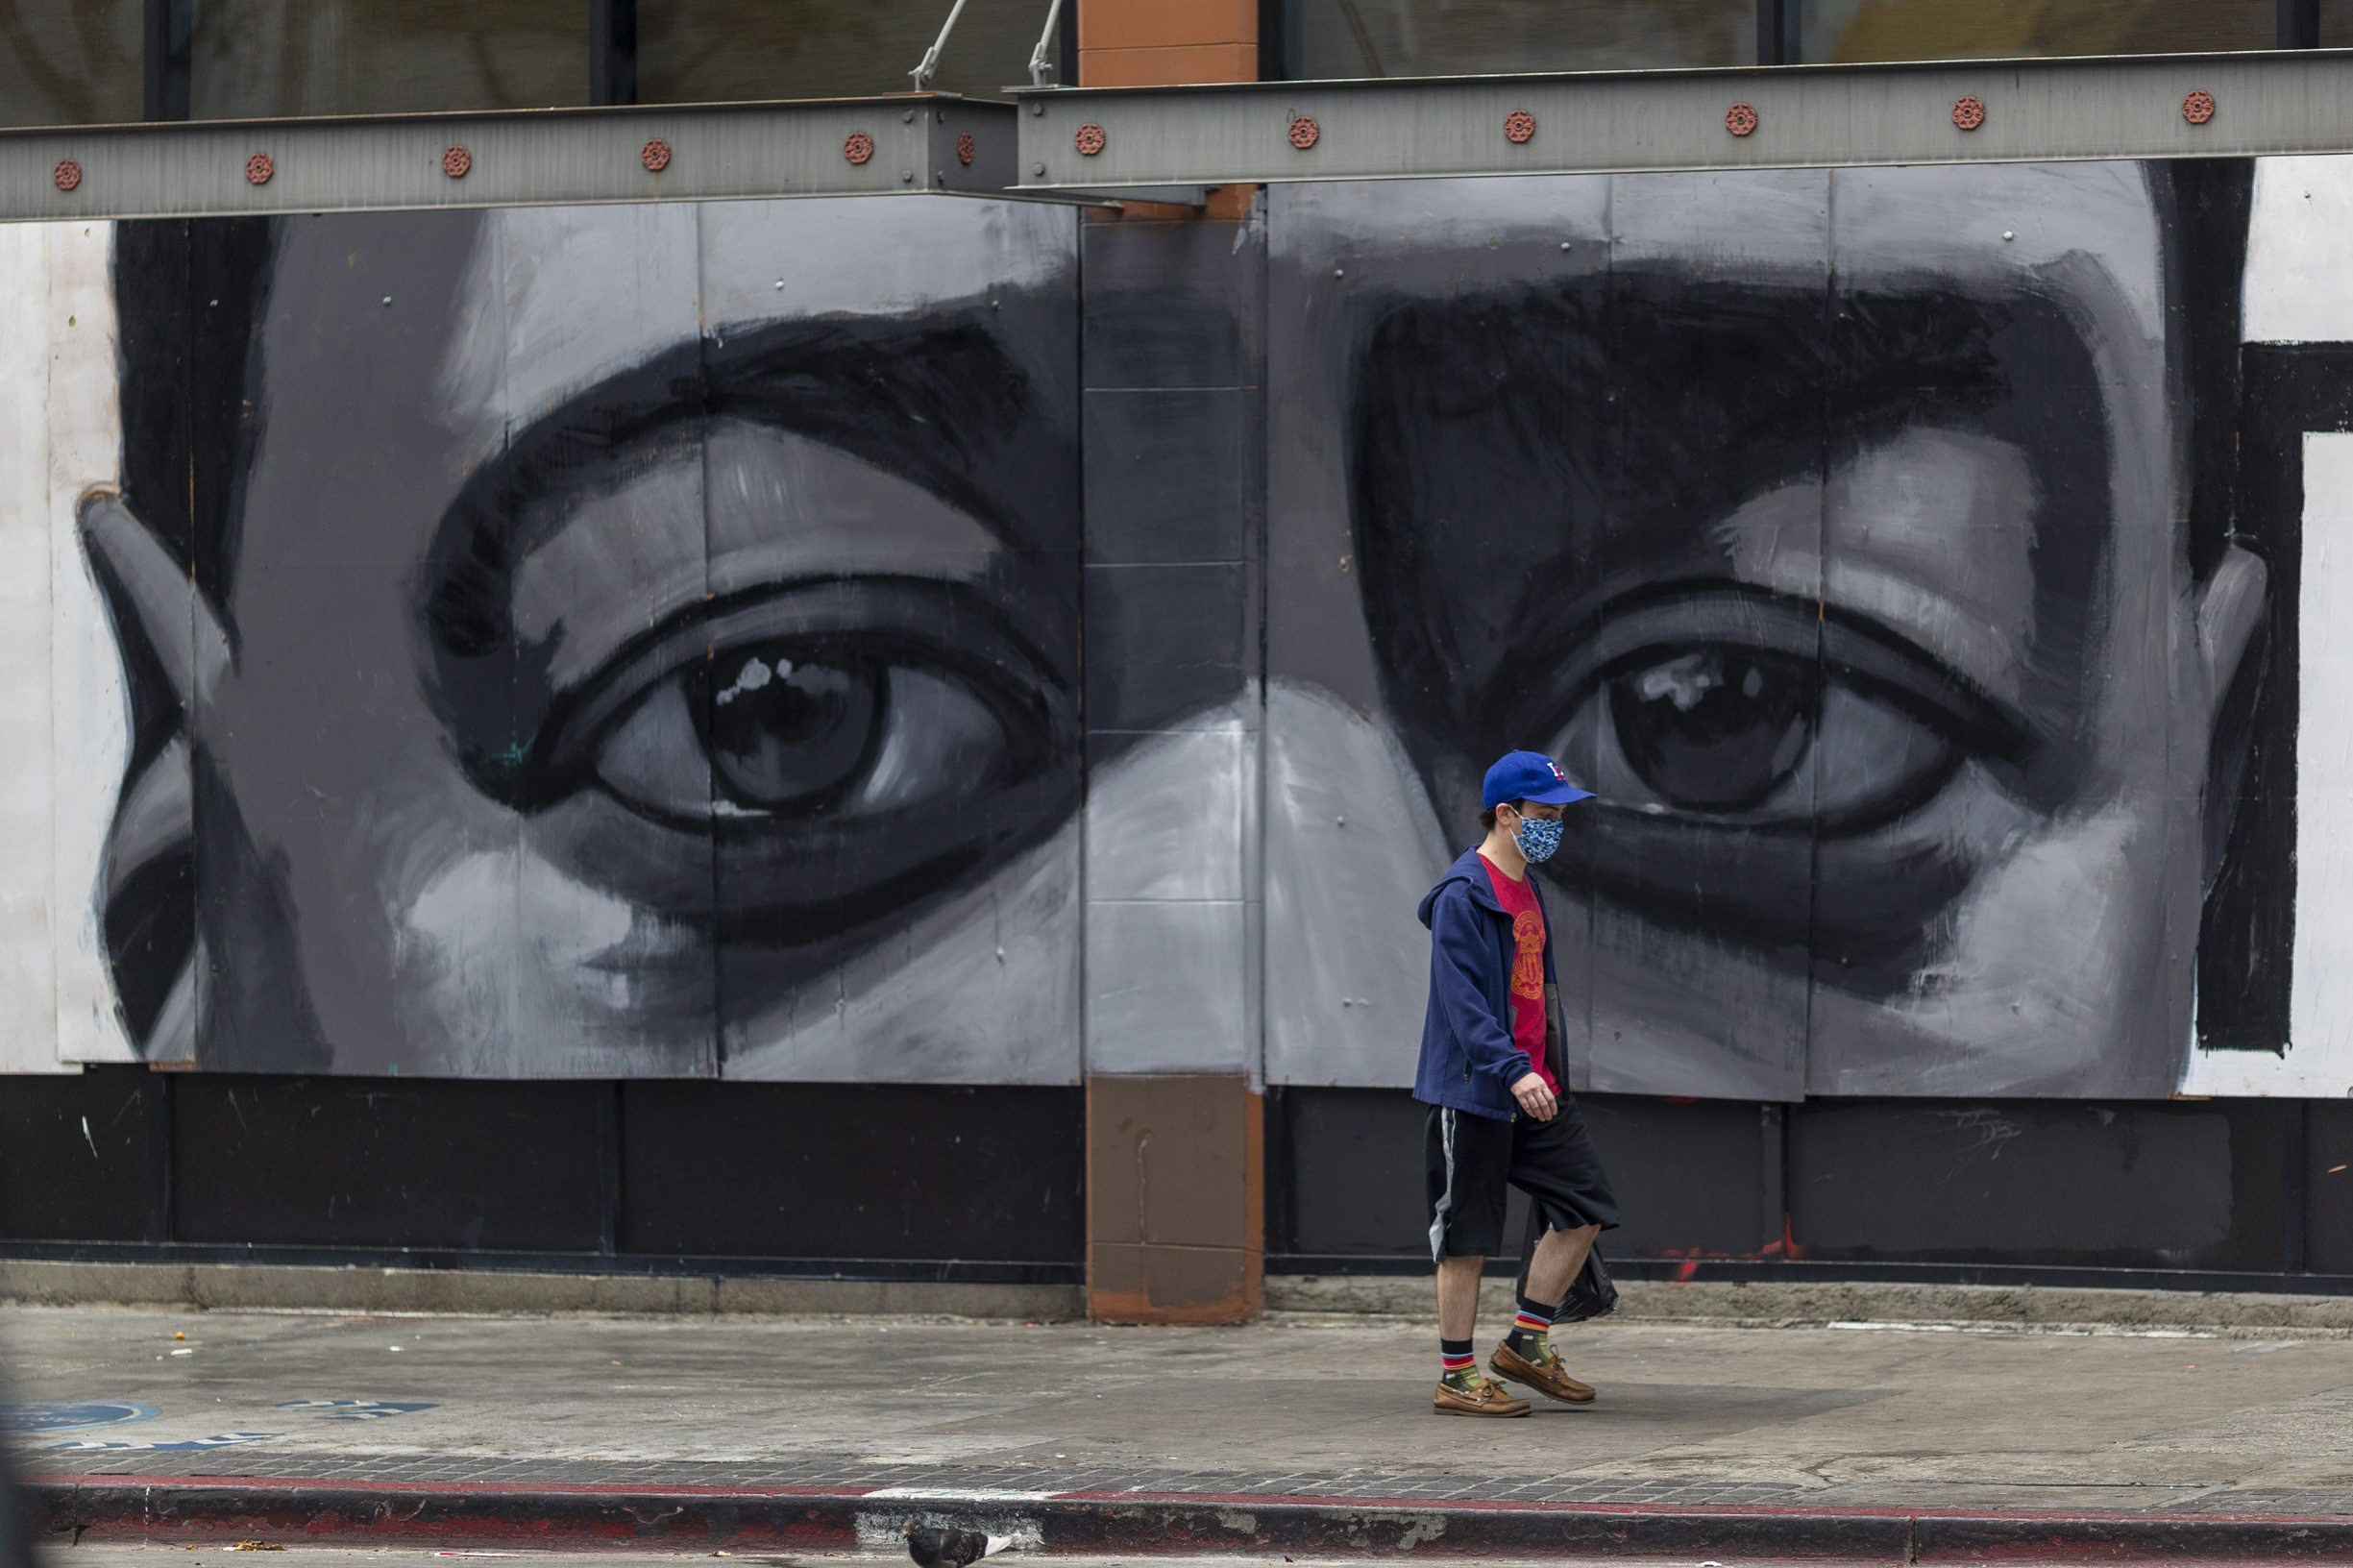 LOS ANGELES, CA - JUNE 06: A mural of a black mans eyes is seen on a downtown building as people continue to protest the killing of George Floyd despite the dangers of the widening coronavirus (COVID-19) pandemic on June 6, 2020 in Los Angeles, United States. This is the 12th day of protests since George Floyd died in Minneapolis police custody on May 25.   David McNew/Getty Images/AFP == FOR NEWSPAPERS, INTERNET, TELCOS & TELEVISION USE ONLY ==